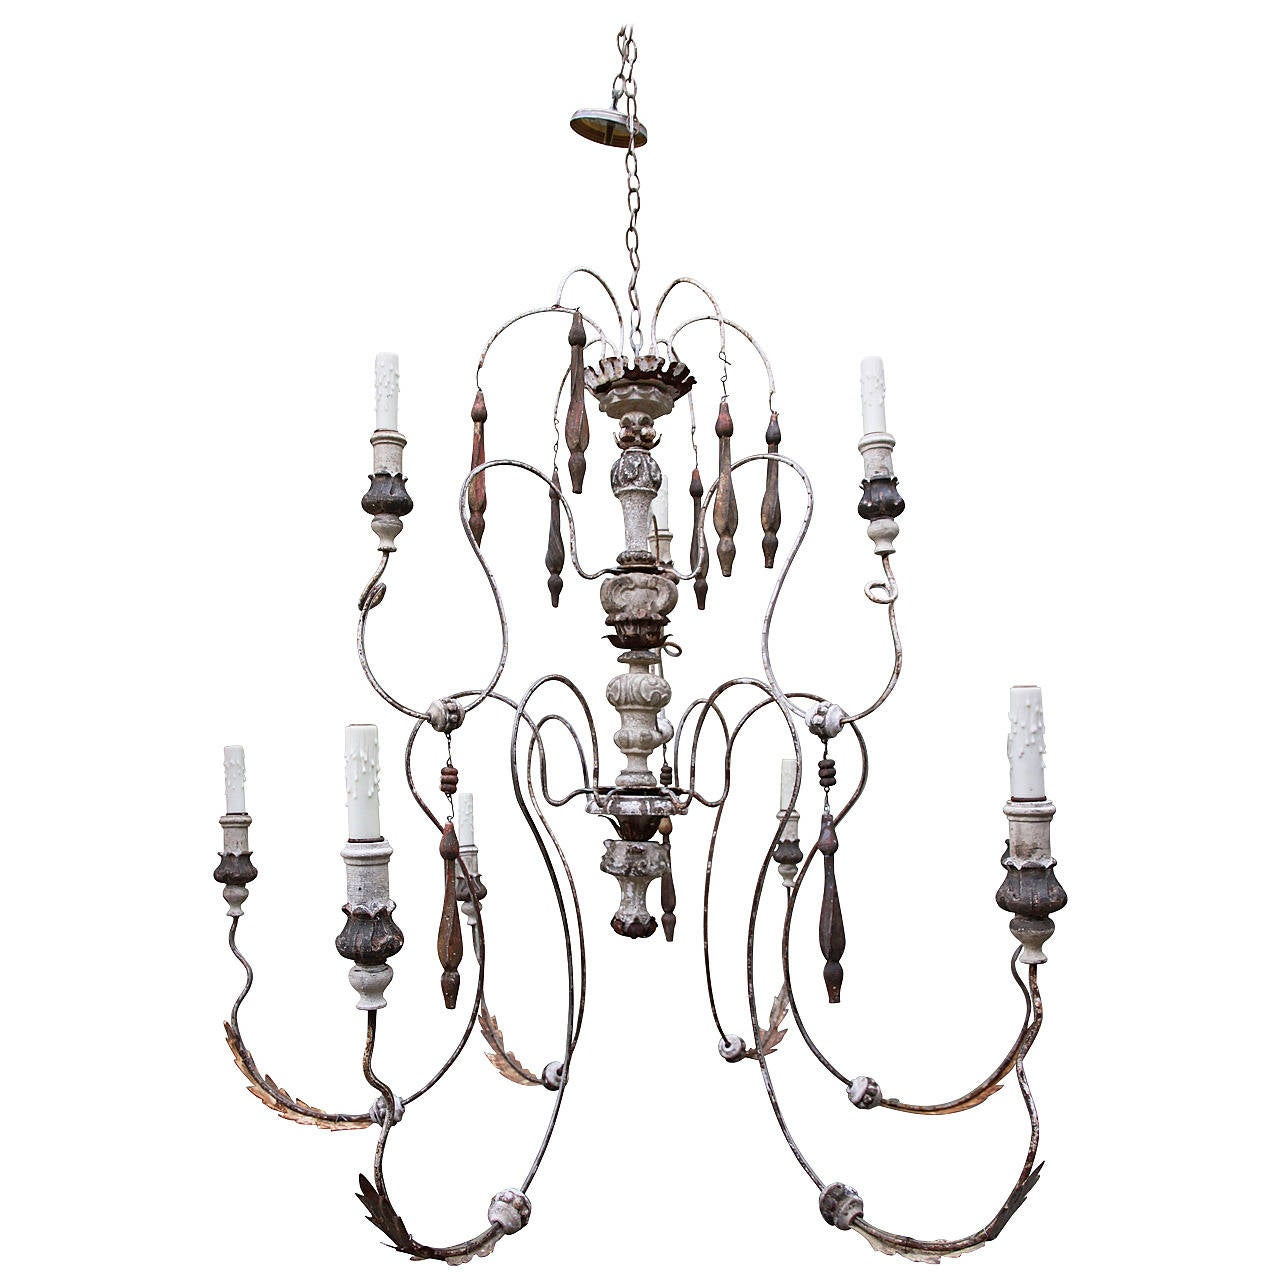 Nine-Light Italian Painted Chandelier with Wood Tassels For Sale